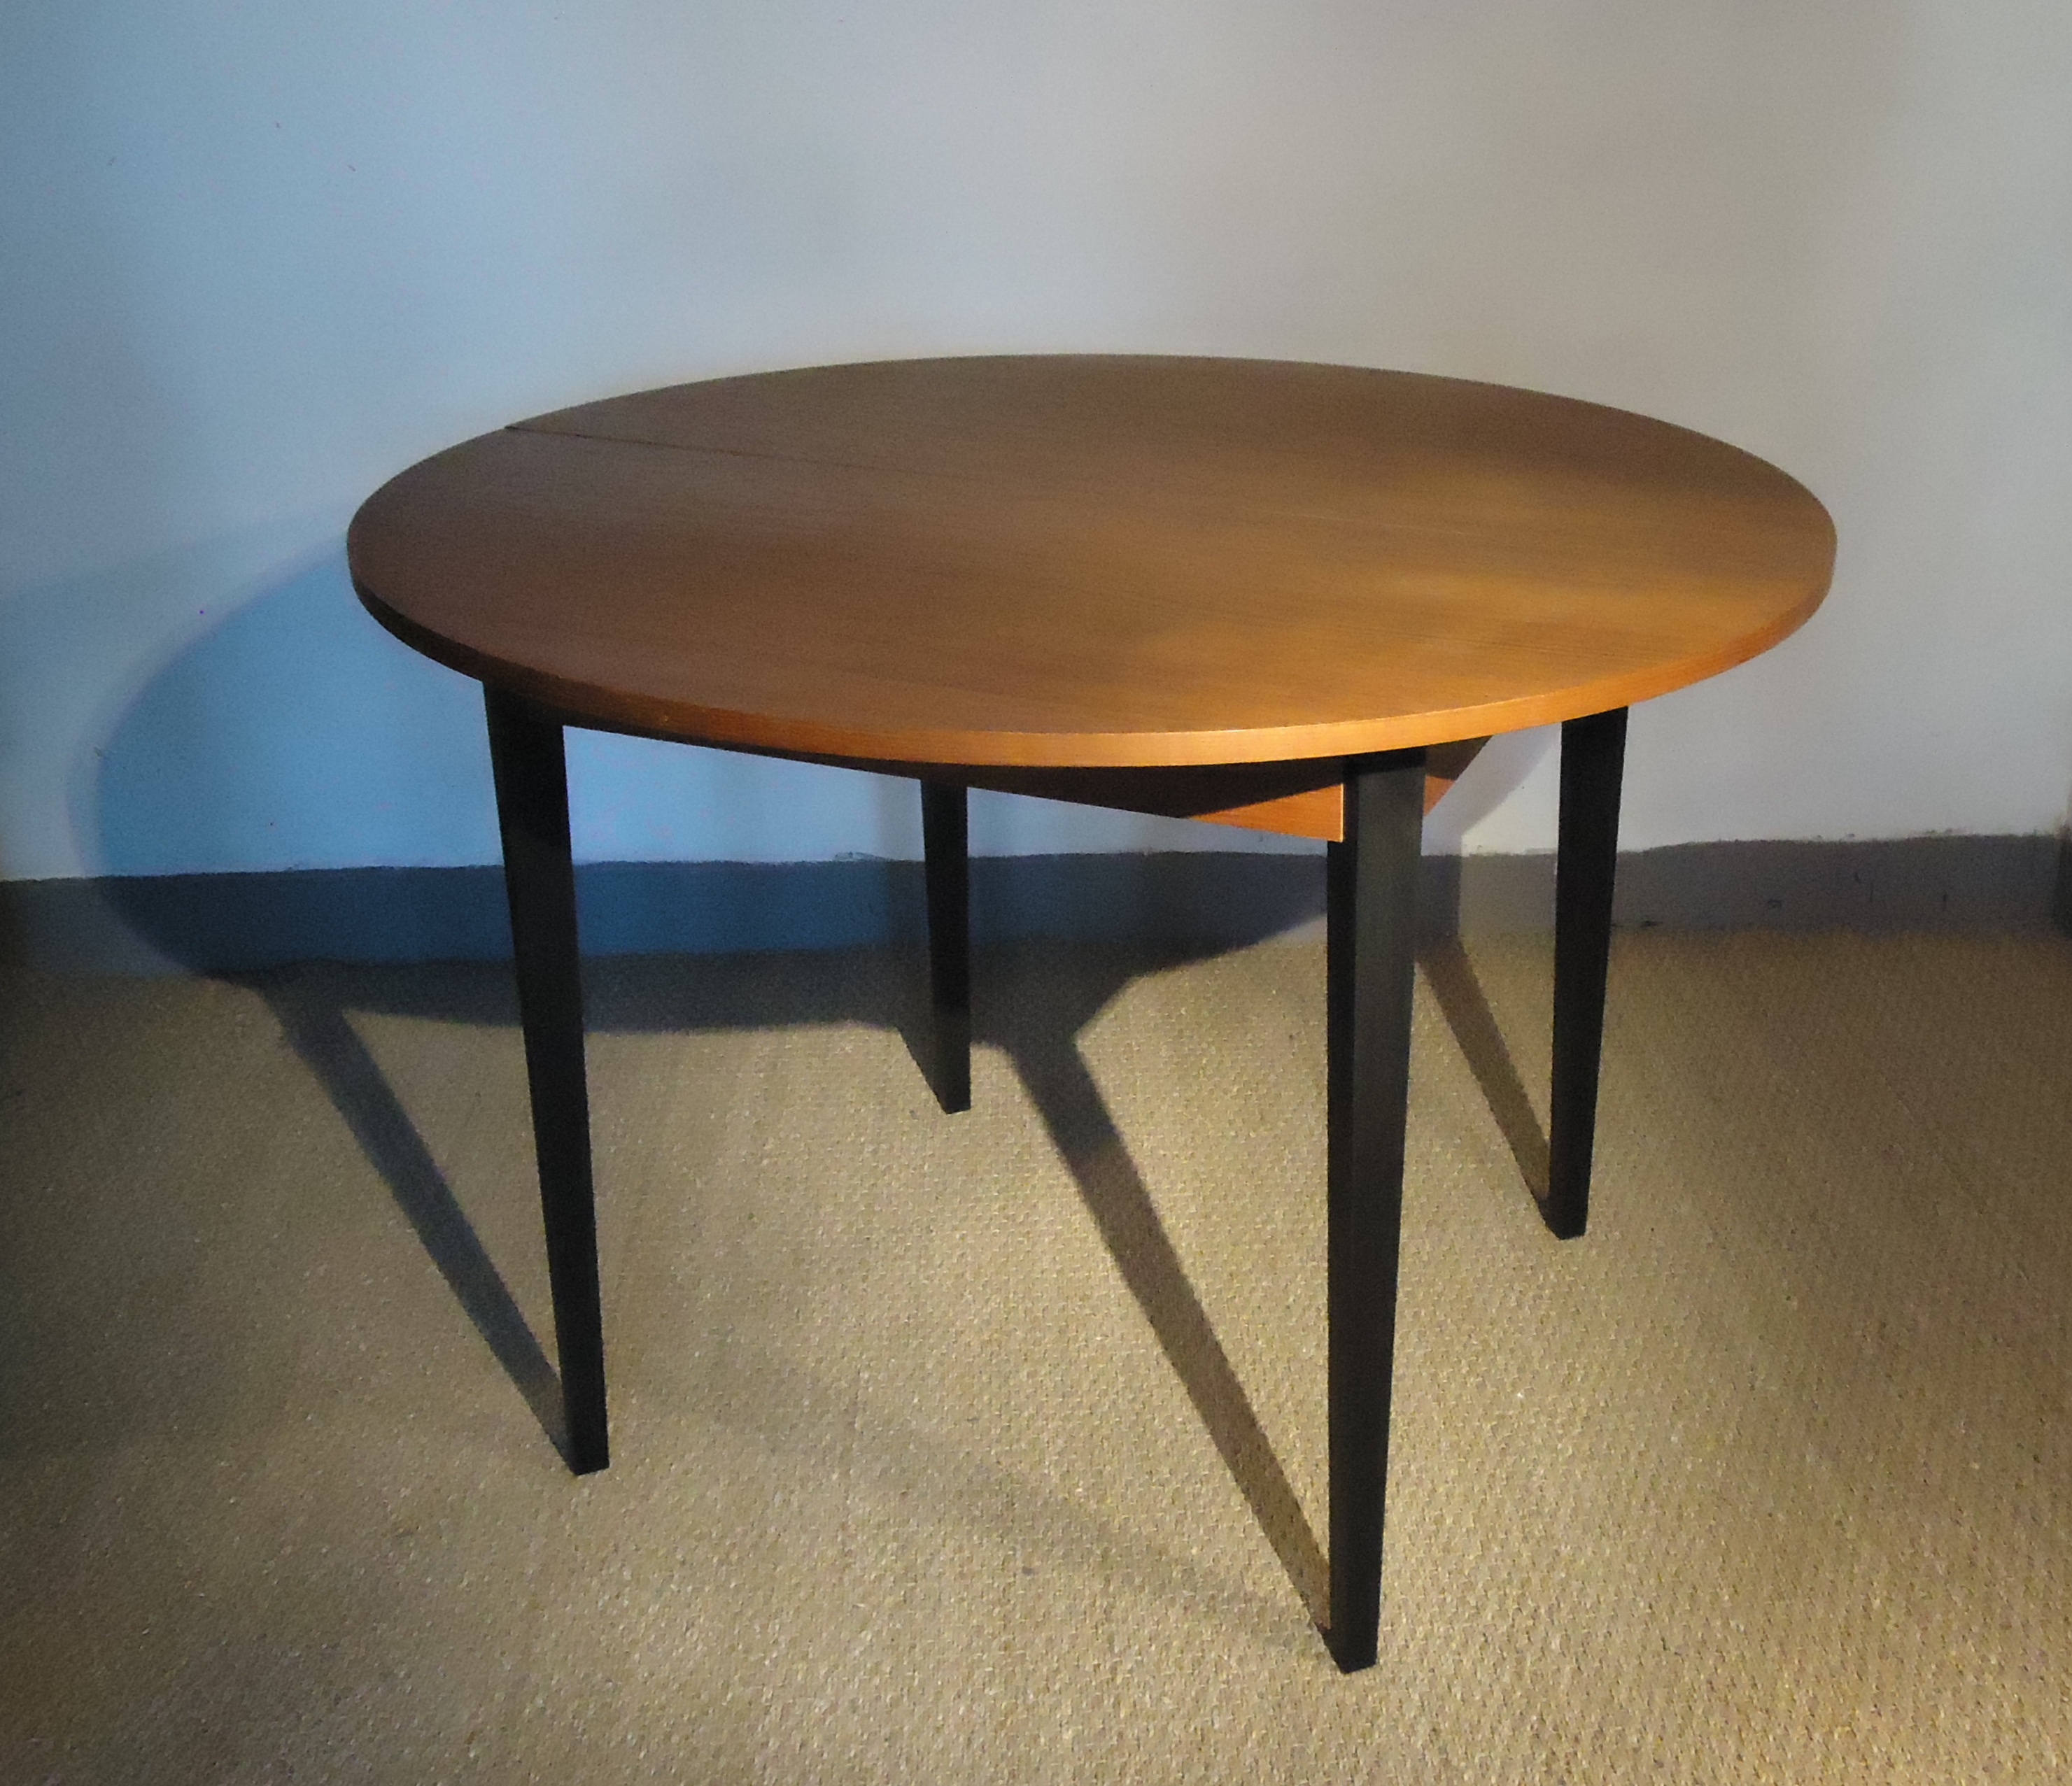 Table ronde scandinave vendu lu bee for Table scandinave avec rallonge